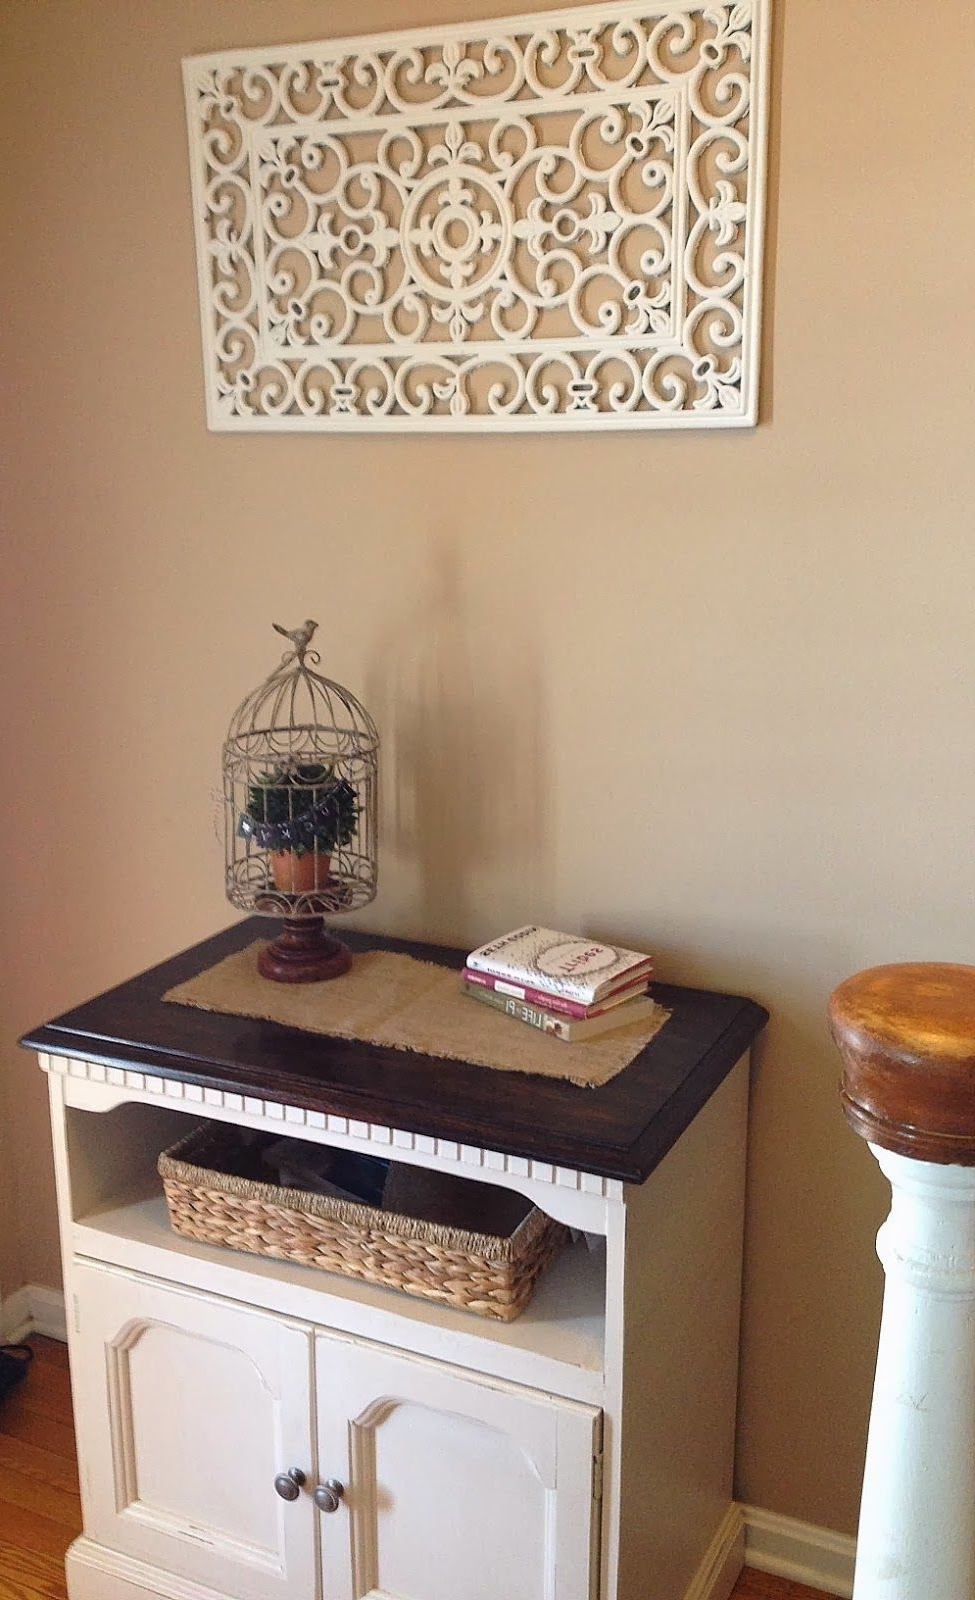 Latest Pottery Barn Wall Art Intended For Diy Pottery Barn Wall Art Knockoff (View 5 of 15)